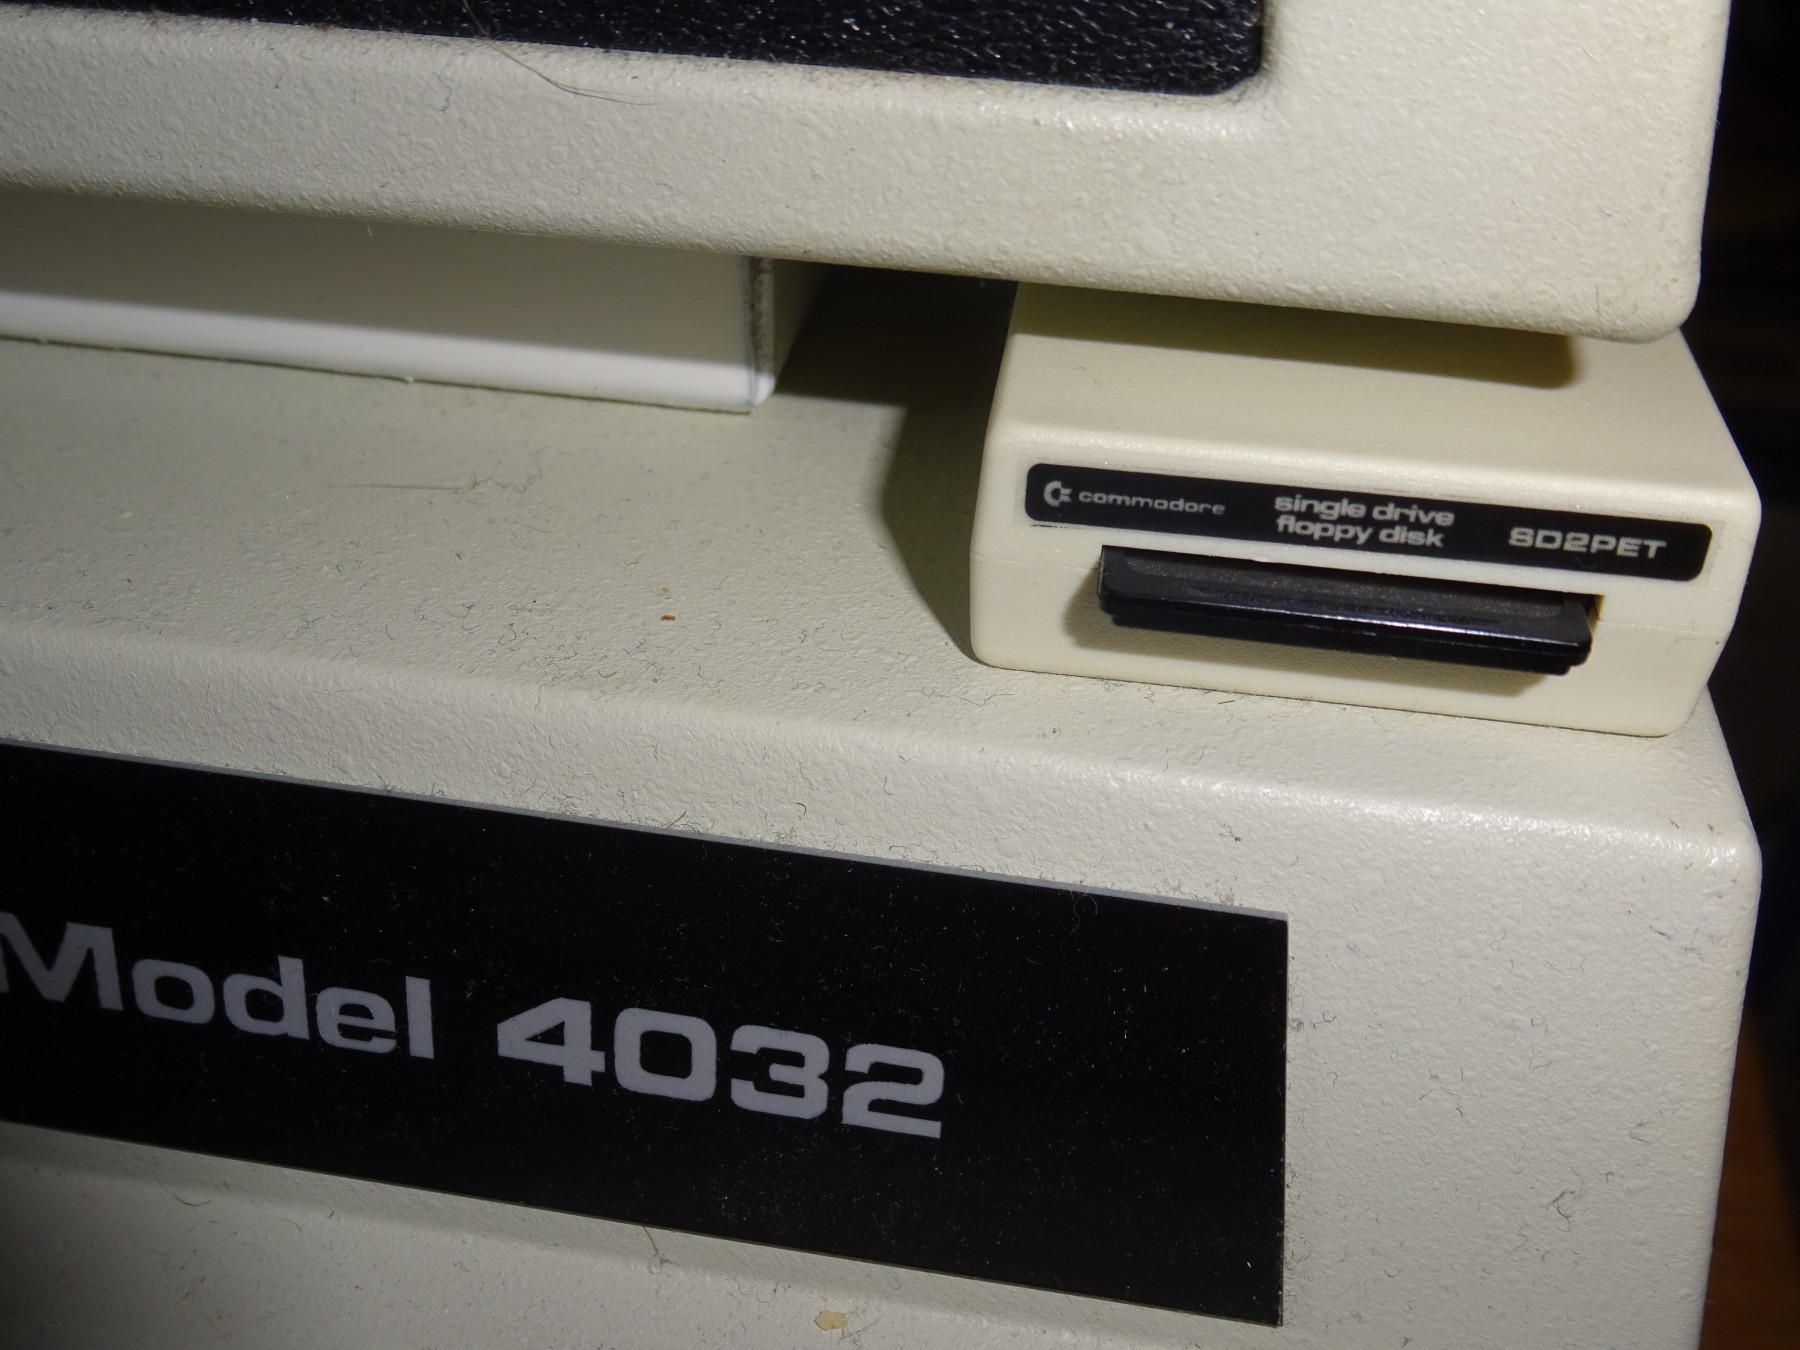 SD2PET SD Card 2031 Style disk drive for the Commodore PET